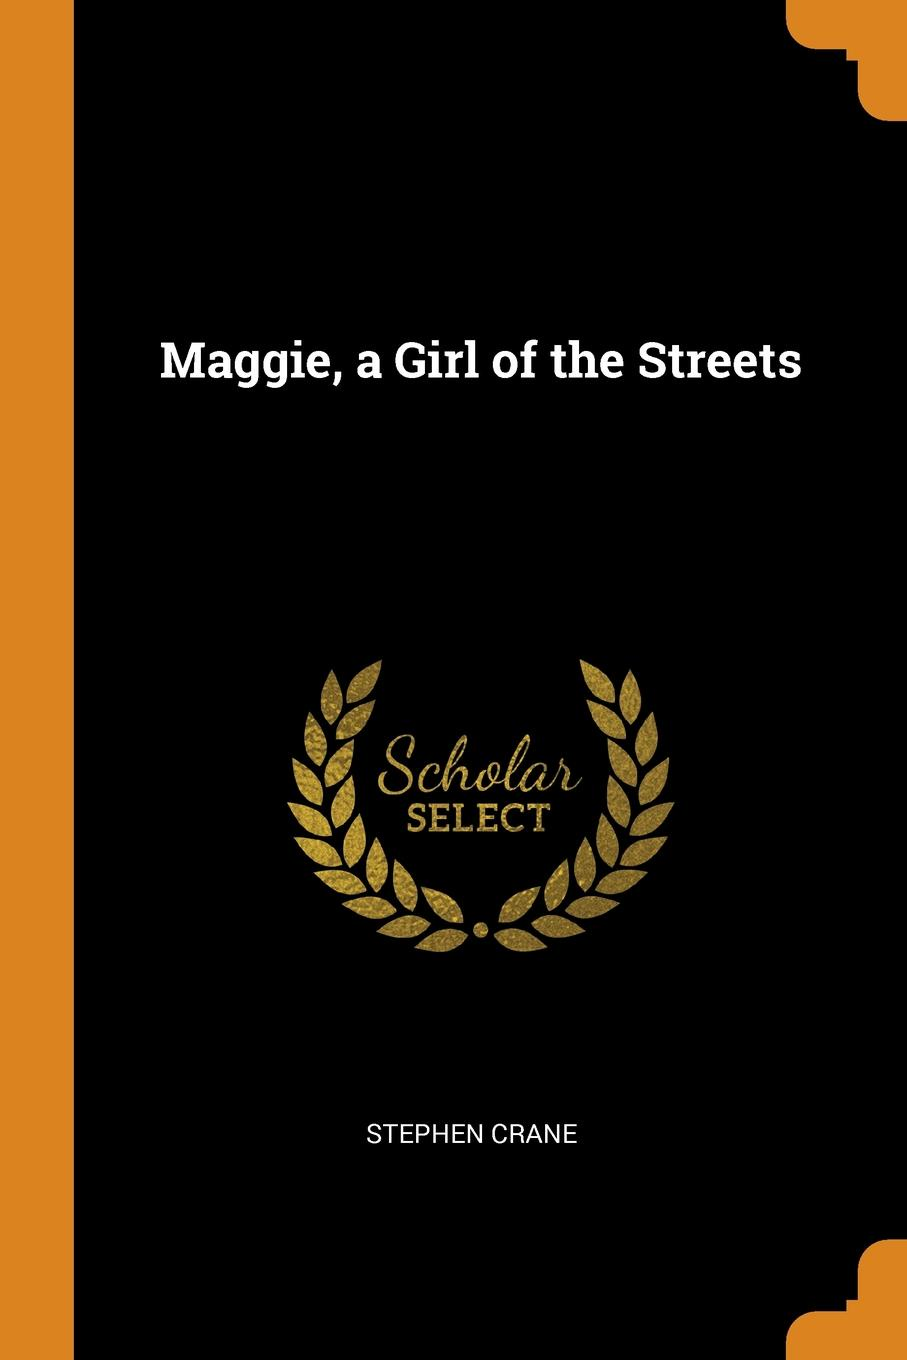 Stephen Crane Maggie, a Girl of the Streets d h lawrence stephen crane the fox maggie a girl of the streets